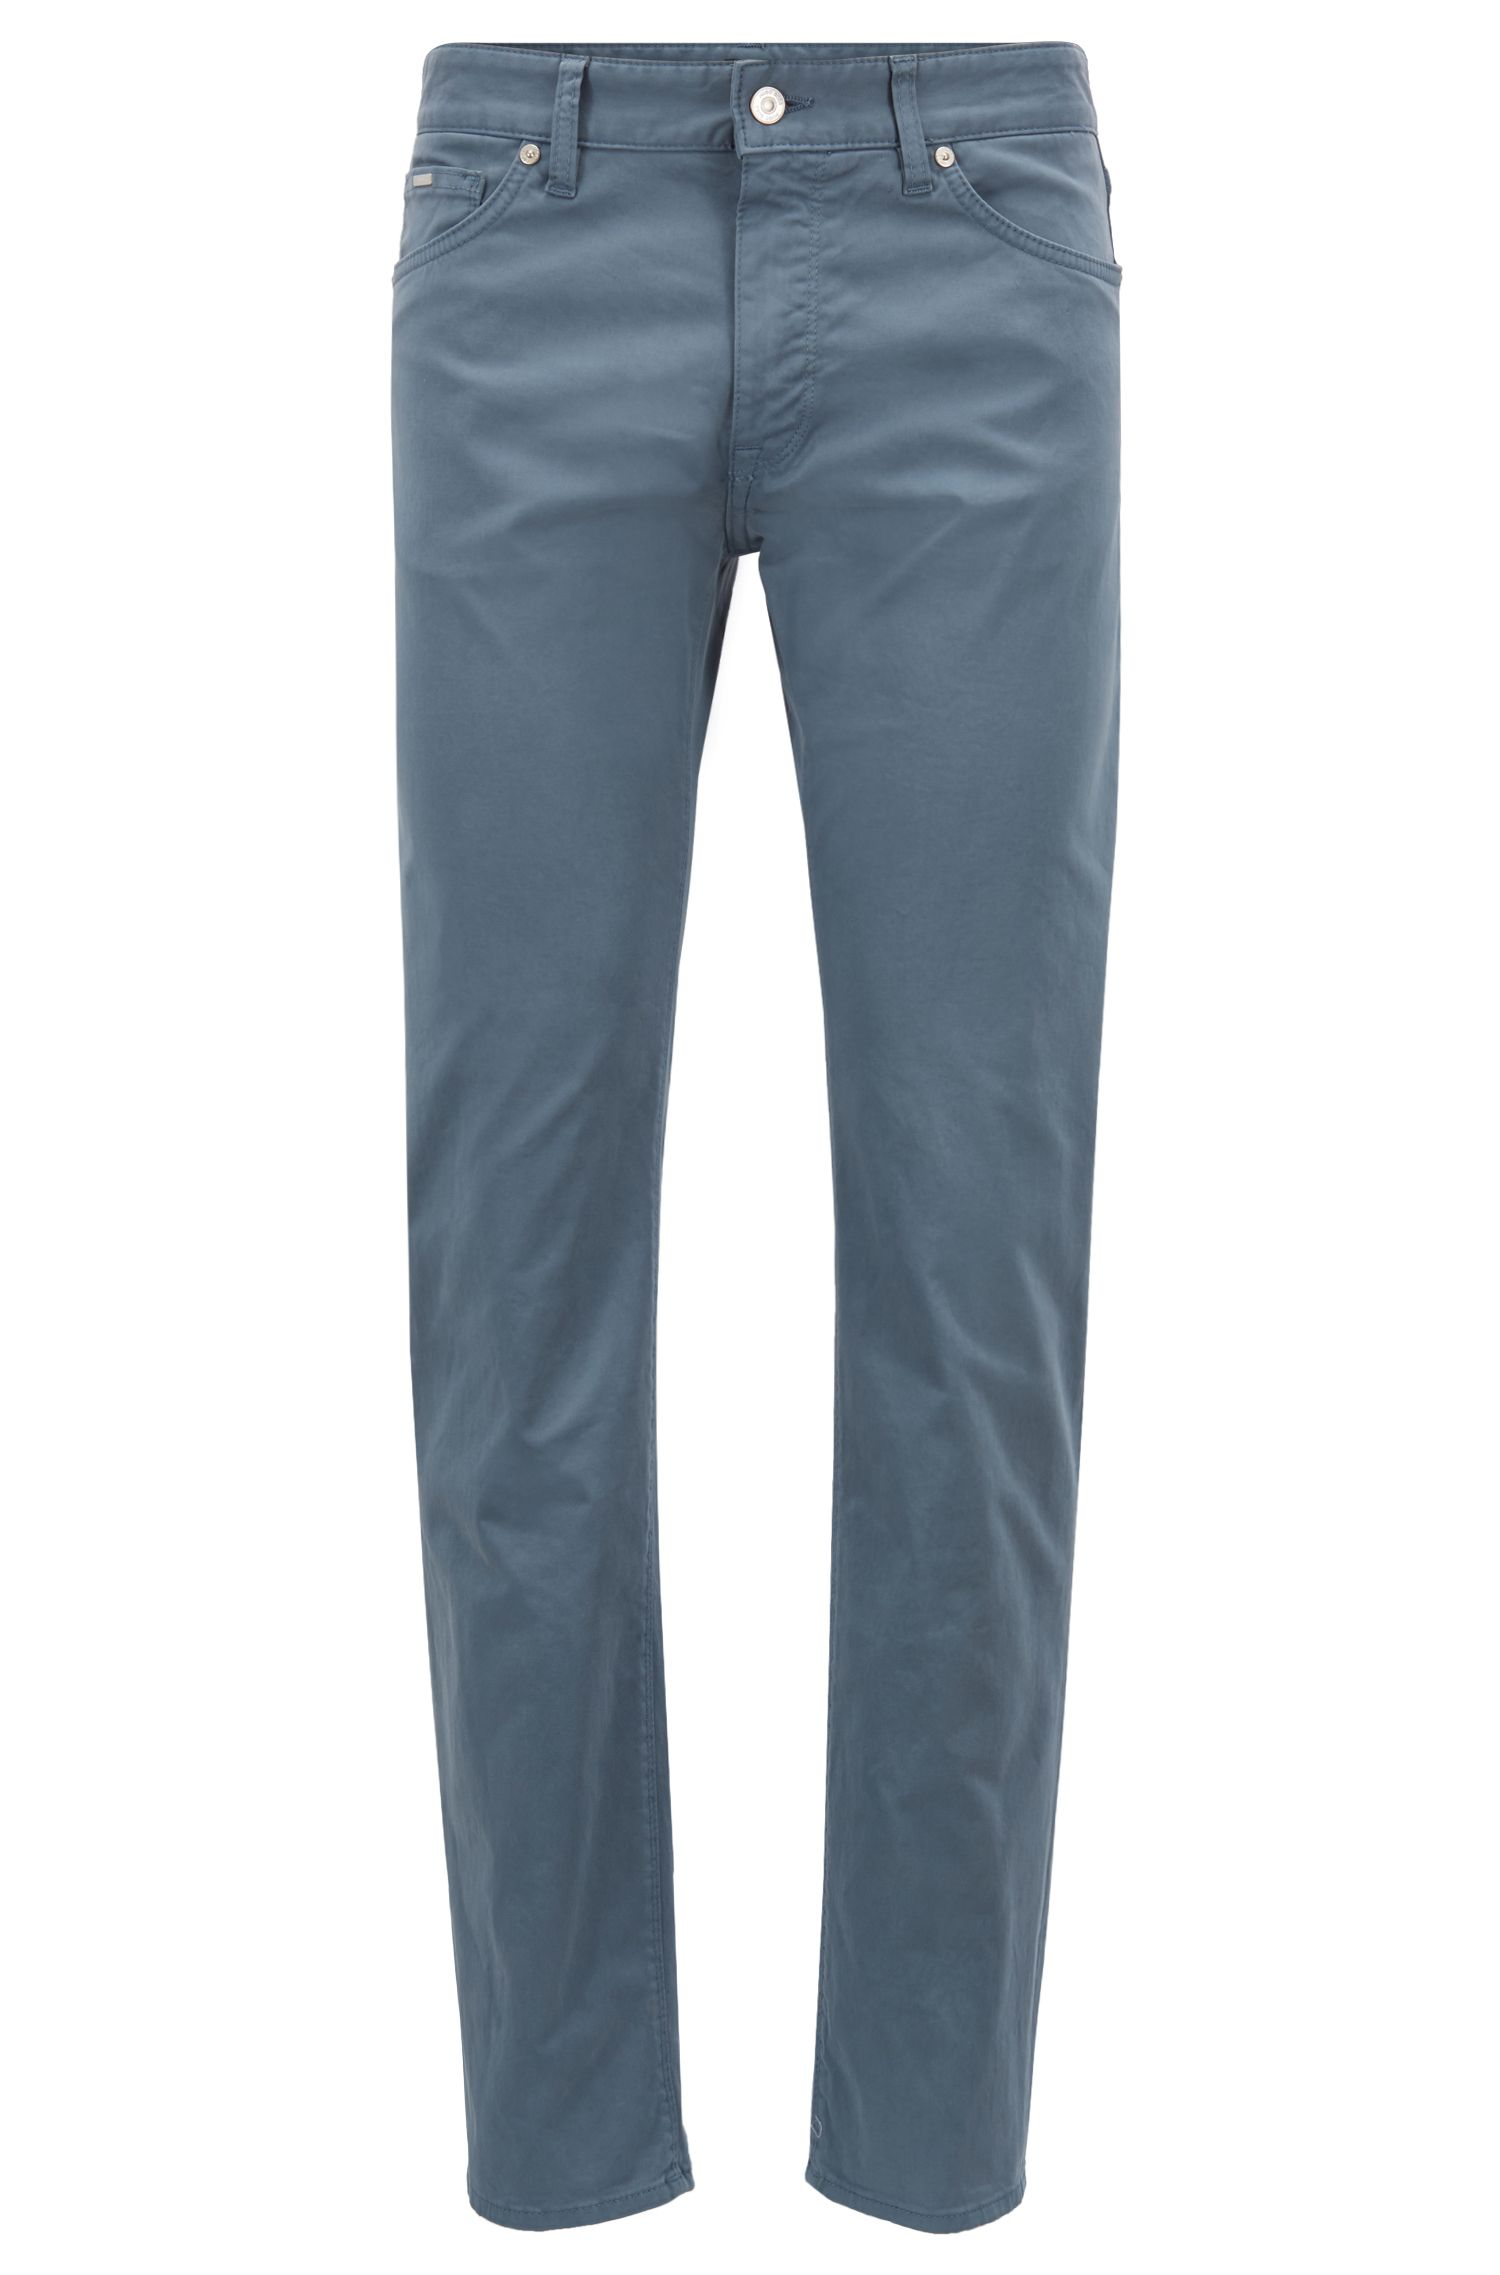 Regular-fit jeans in diamond-brushed satin stretch denim, Blue